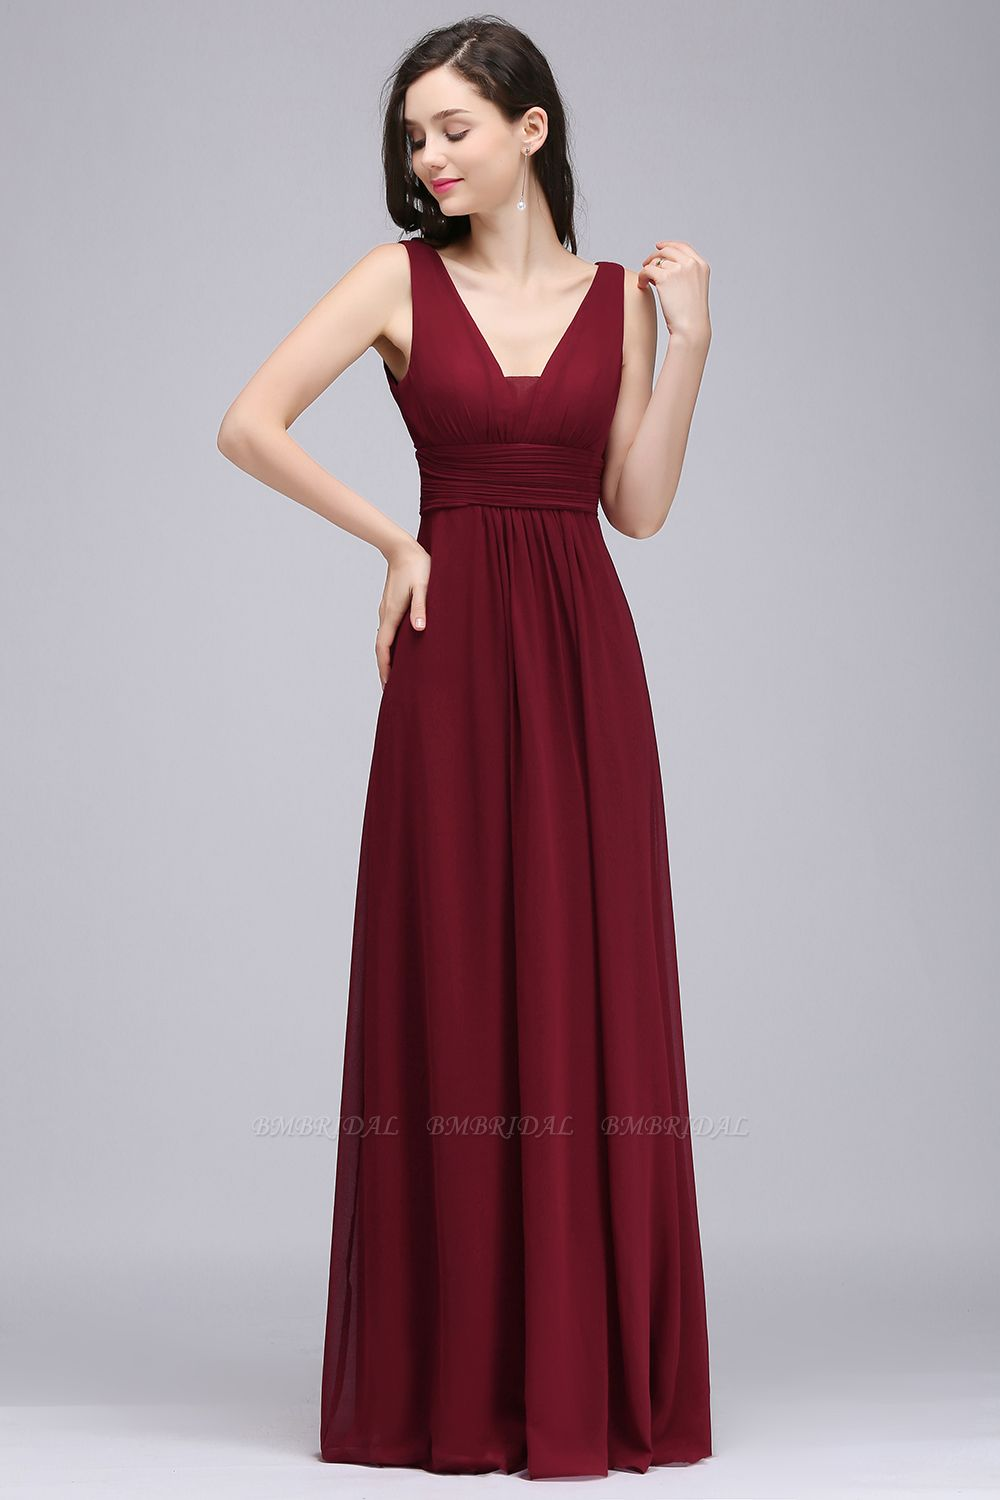 BMbridal Affordable Burgundy Chiffon Long Burgundy Bridesmaid Dress In Stock